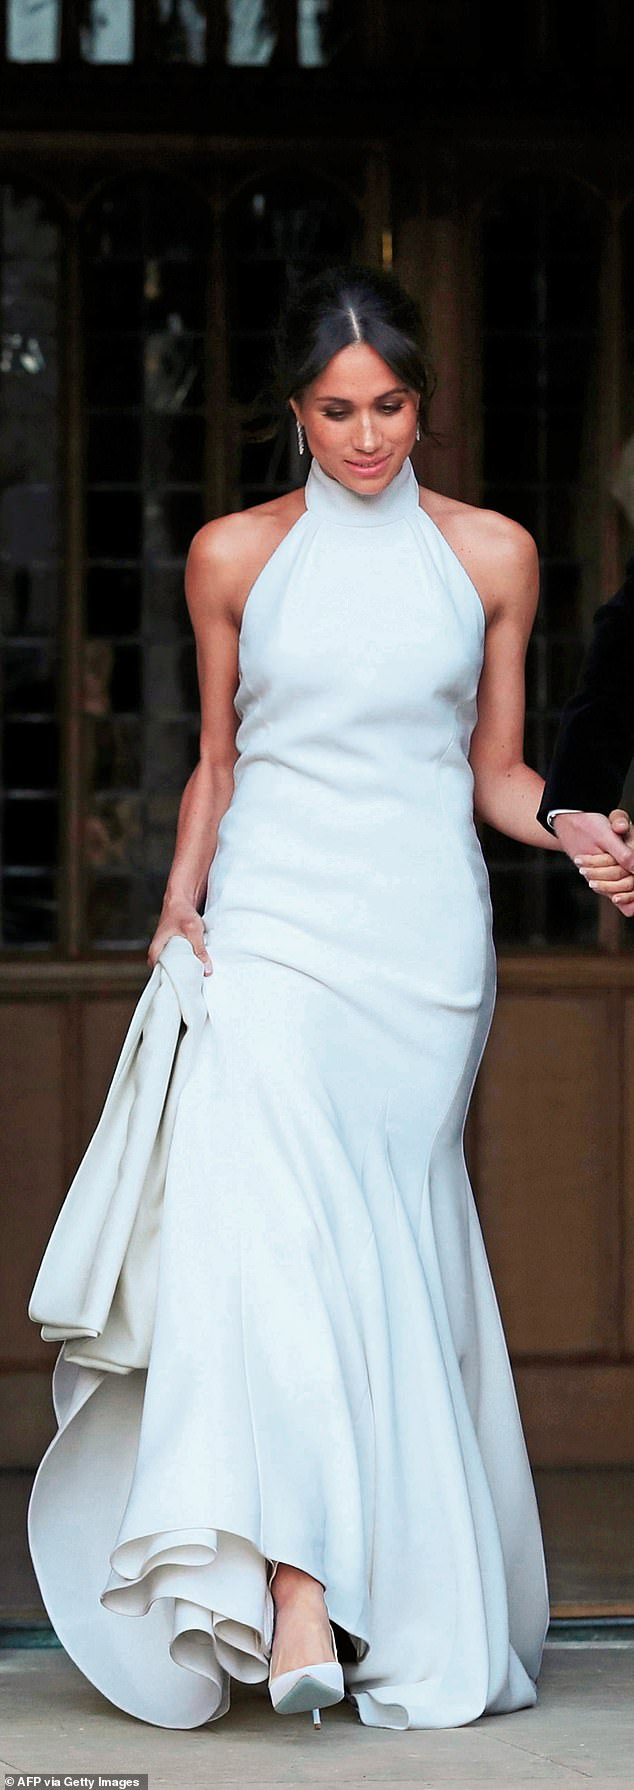 According to family friends, Meghan was intrigued not just by her style but by Diana's independent humanitarian mission